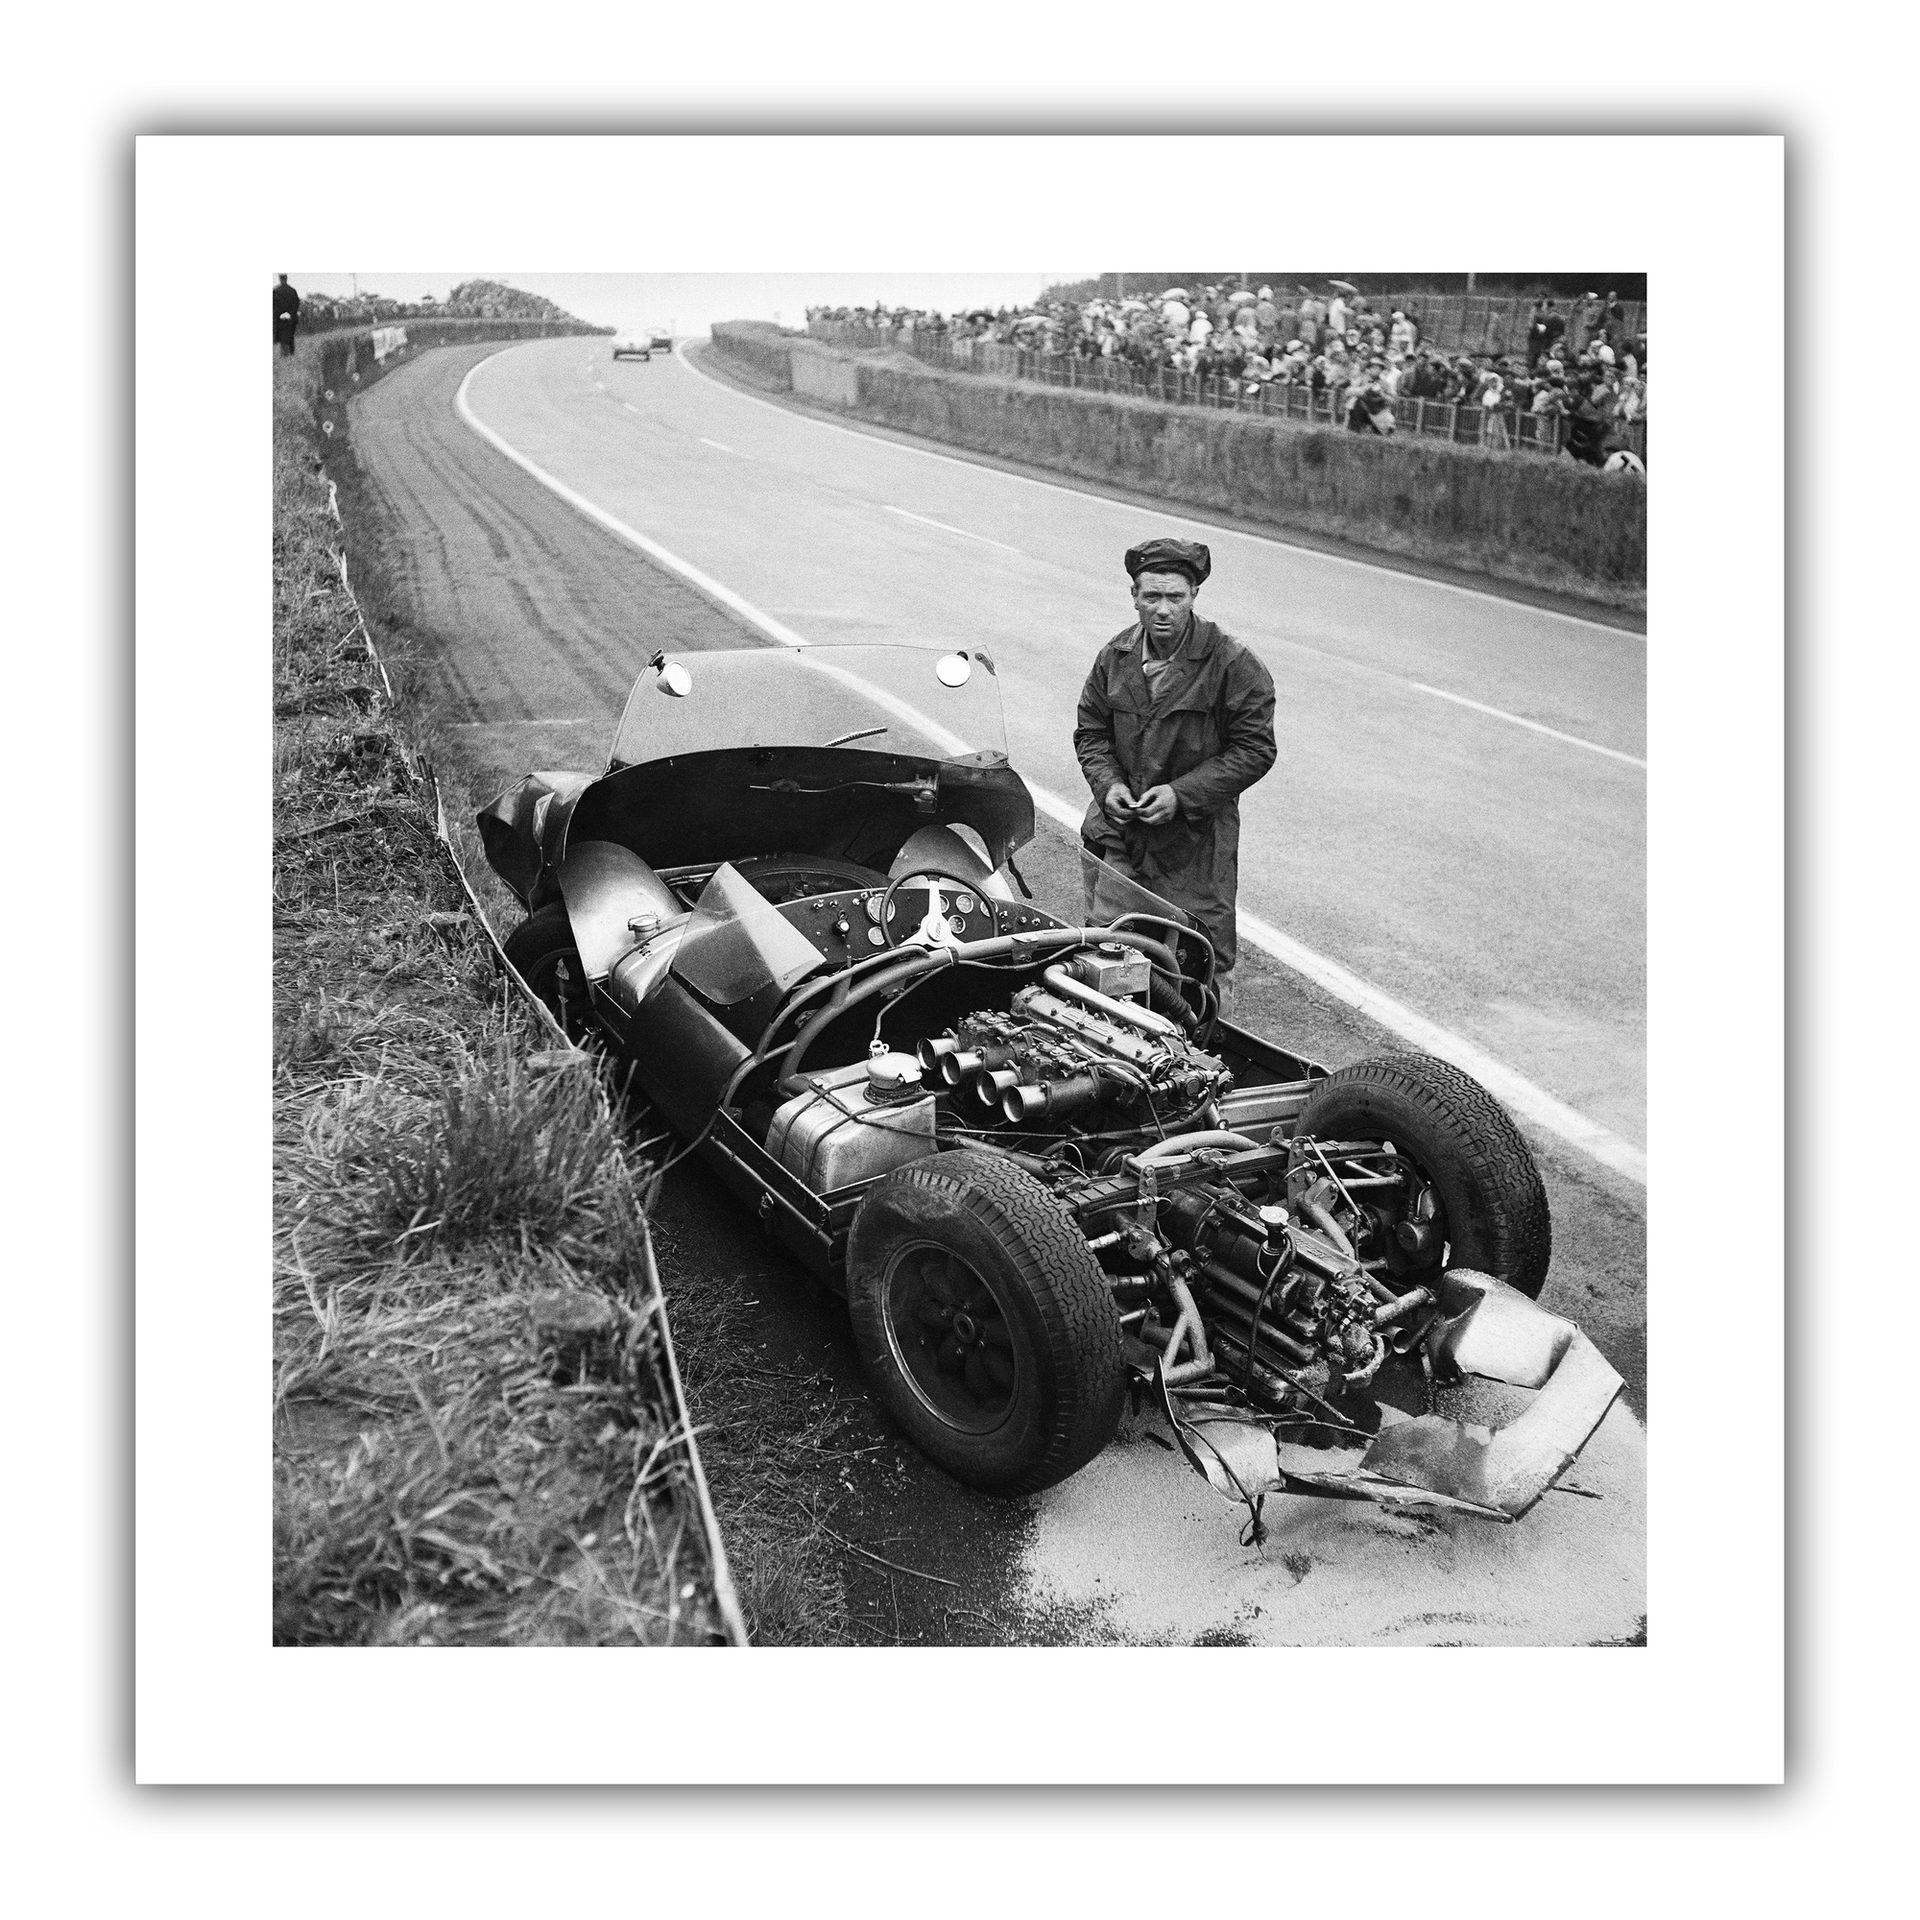 Such is Life in Racing - Le Mans 1961